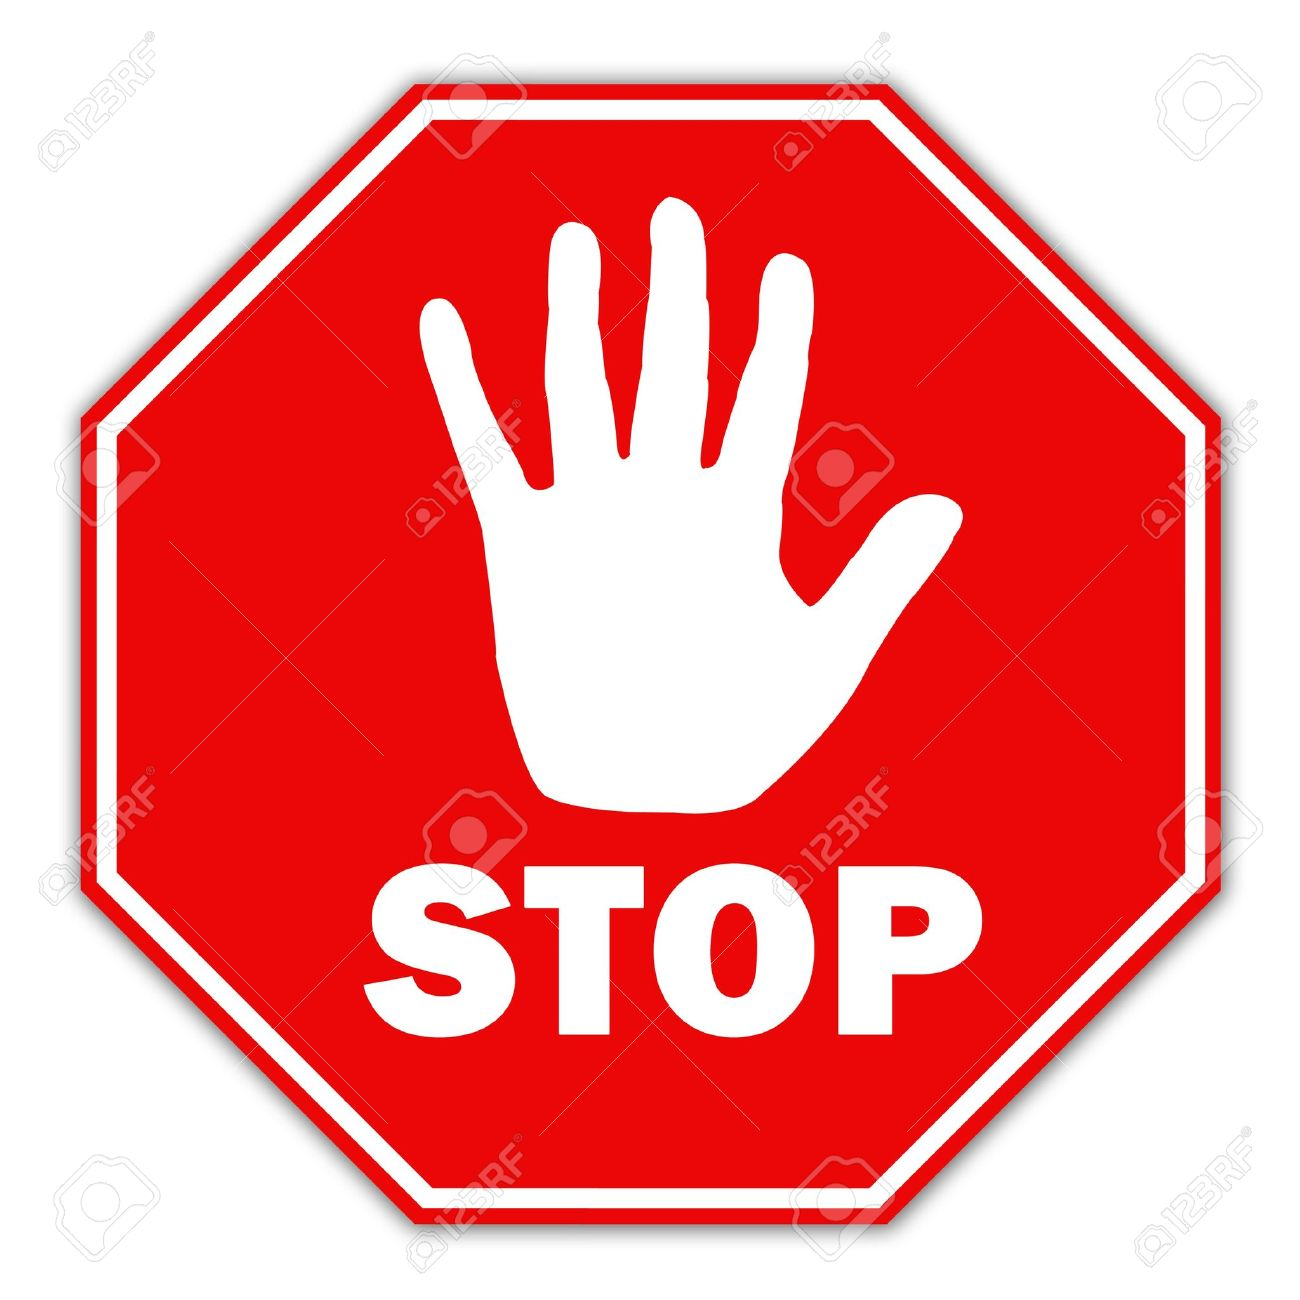 picture of stop sign Stop Sign Stock Photo, Picture And Royalty Free Image. Image 6597624.